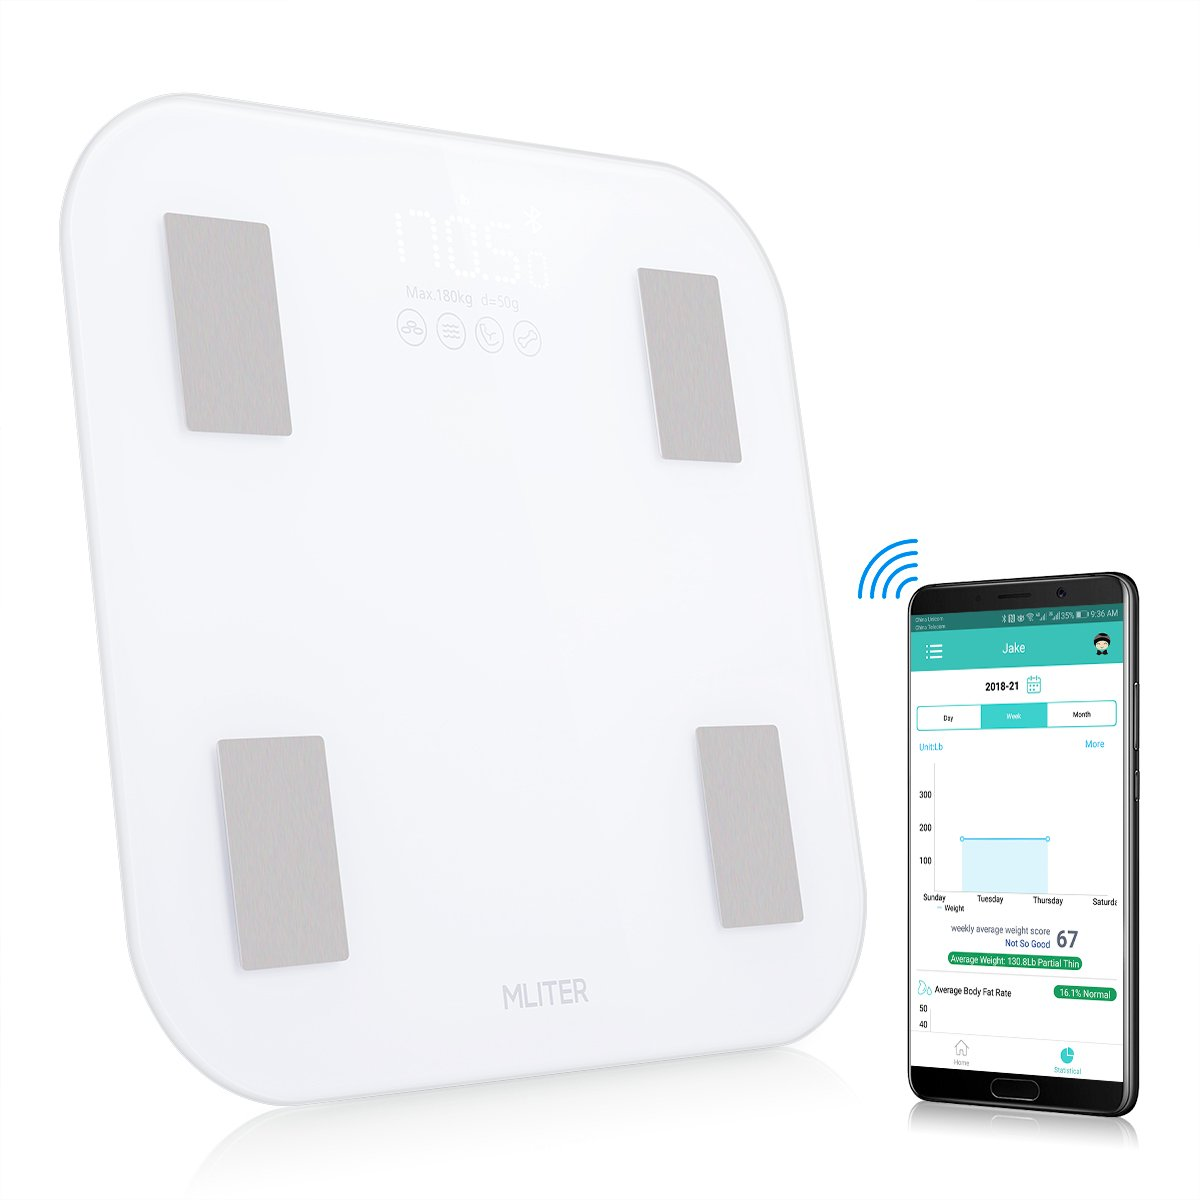 MLITER Accurate Bluetooth Body Fat Scale with 11 Composition Analyzer Supports iOS and Android Health Monitoring App for Weight Water BMI Protein Muscle Rate Measuring - Tempered Glass 180KG White